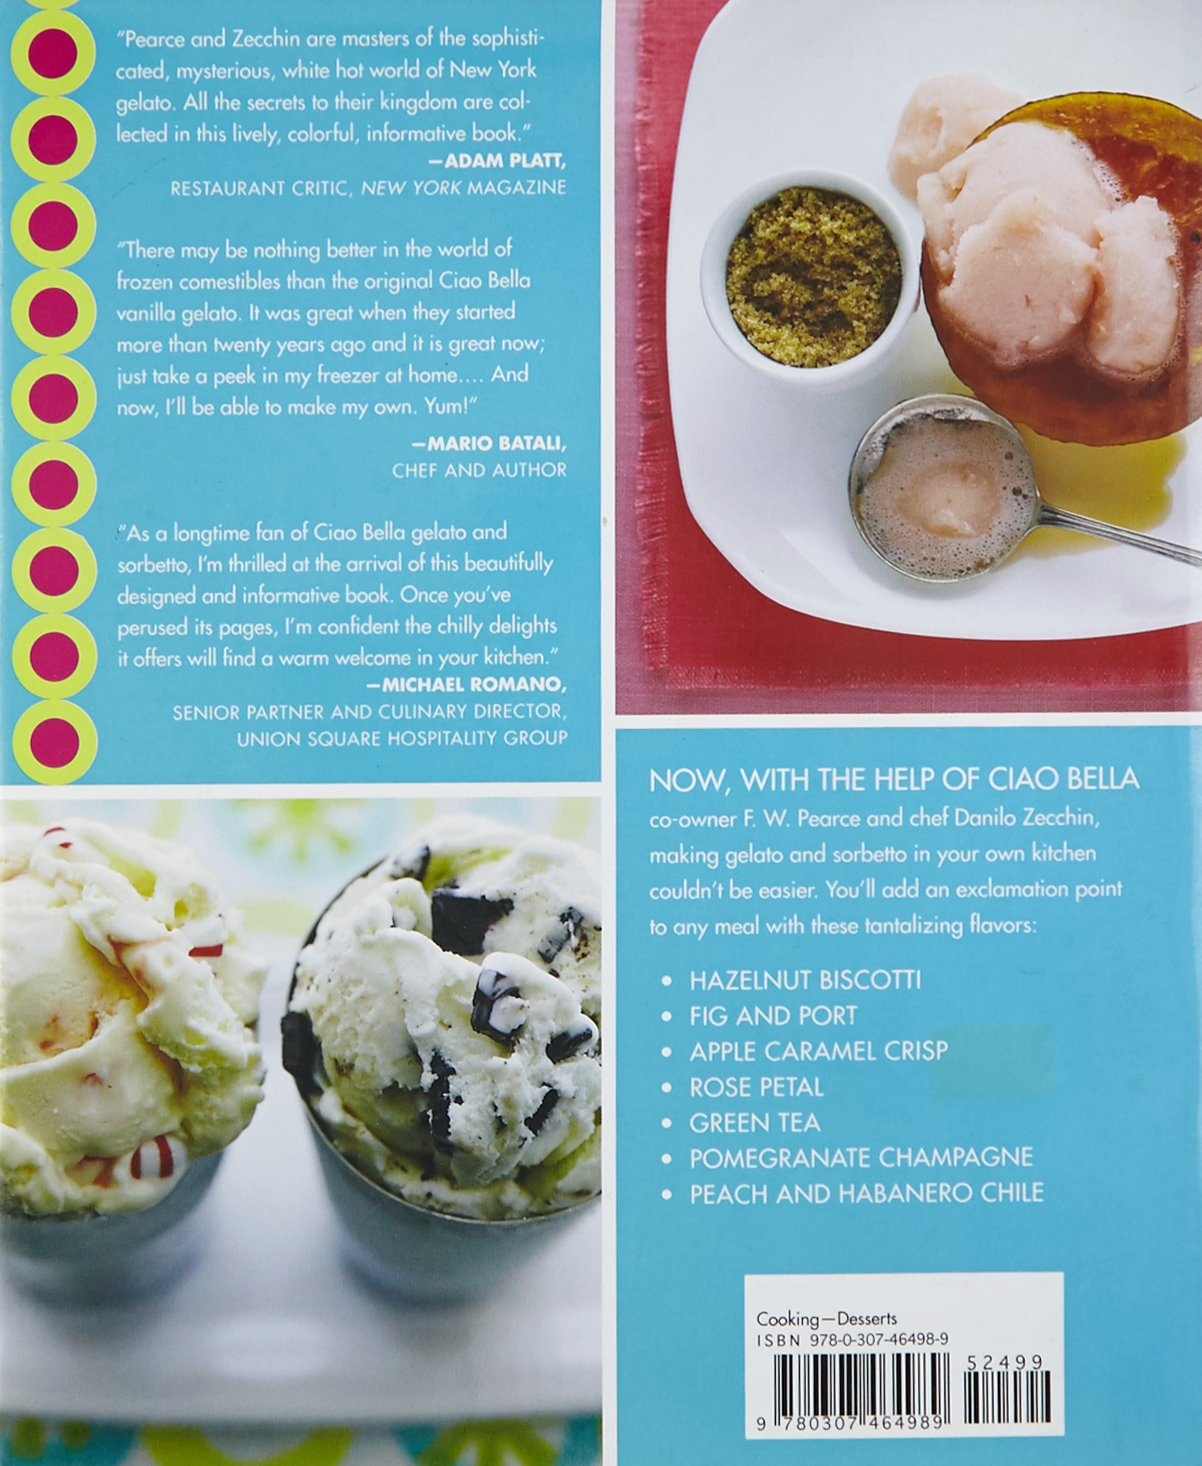 The Ciao Bella Book Of Gelato And Sorbetto: Bold, Fresh Flavors to Make at Home: Amazon.es: Pearce F. W.: Libros en idiomas extranjeros